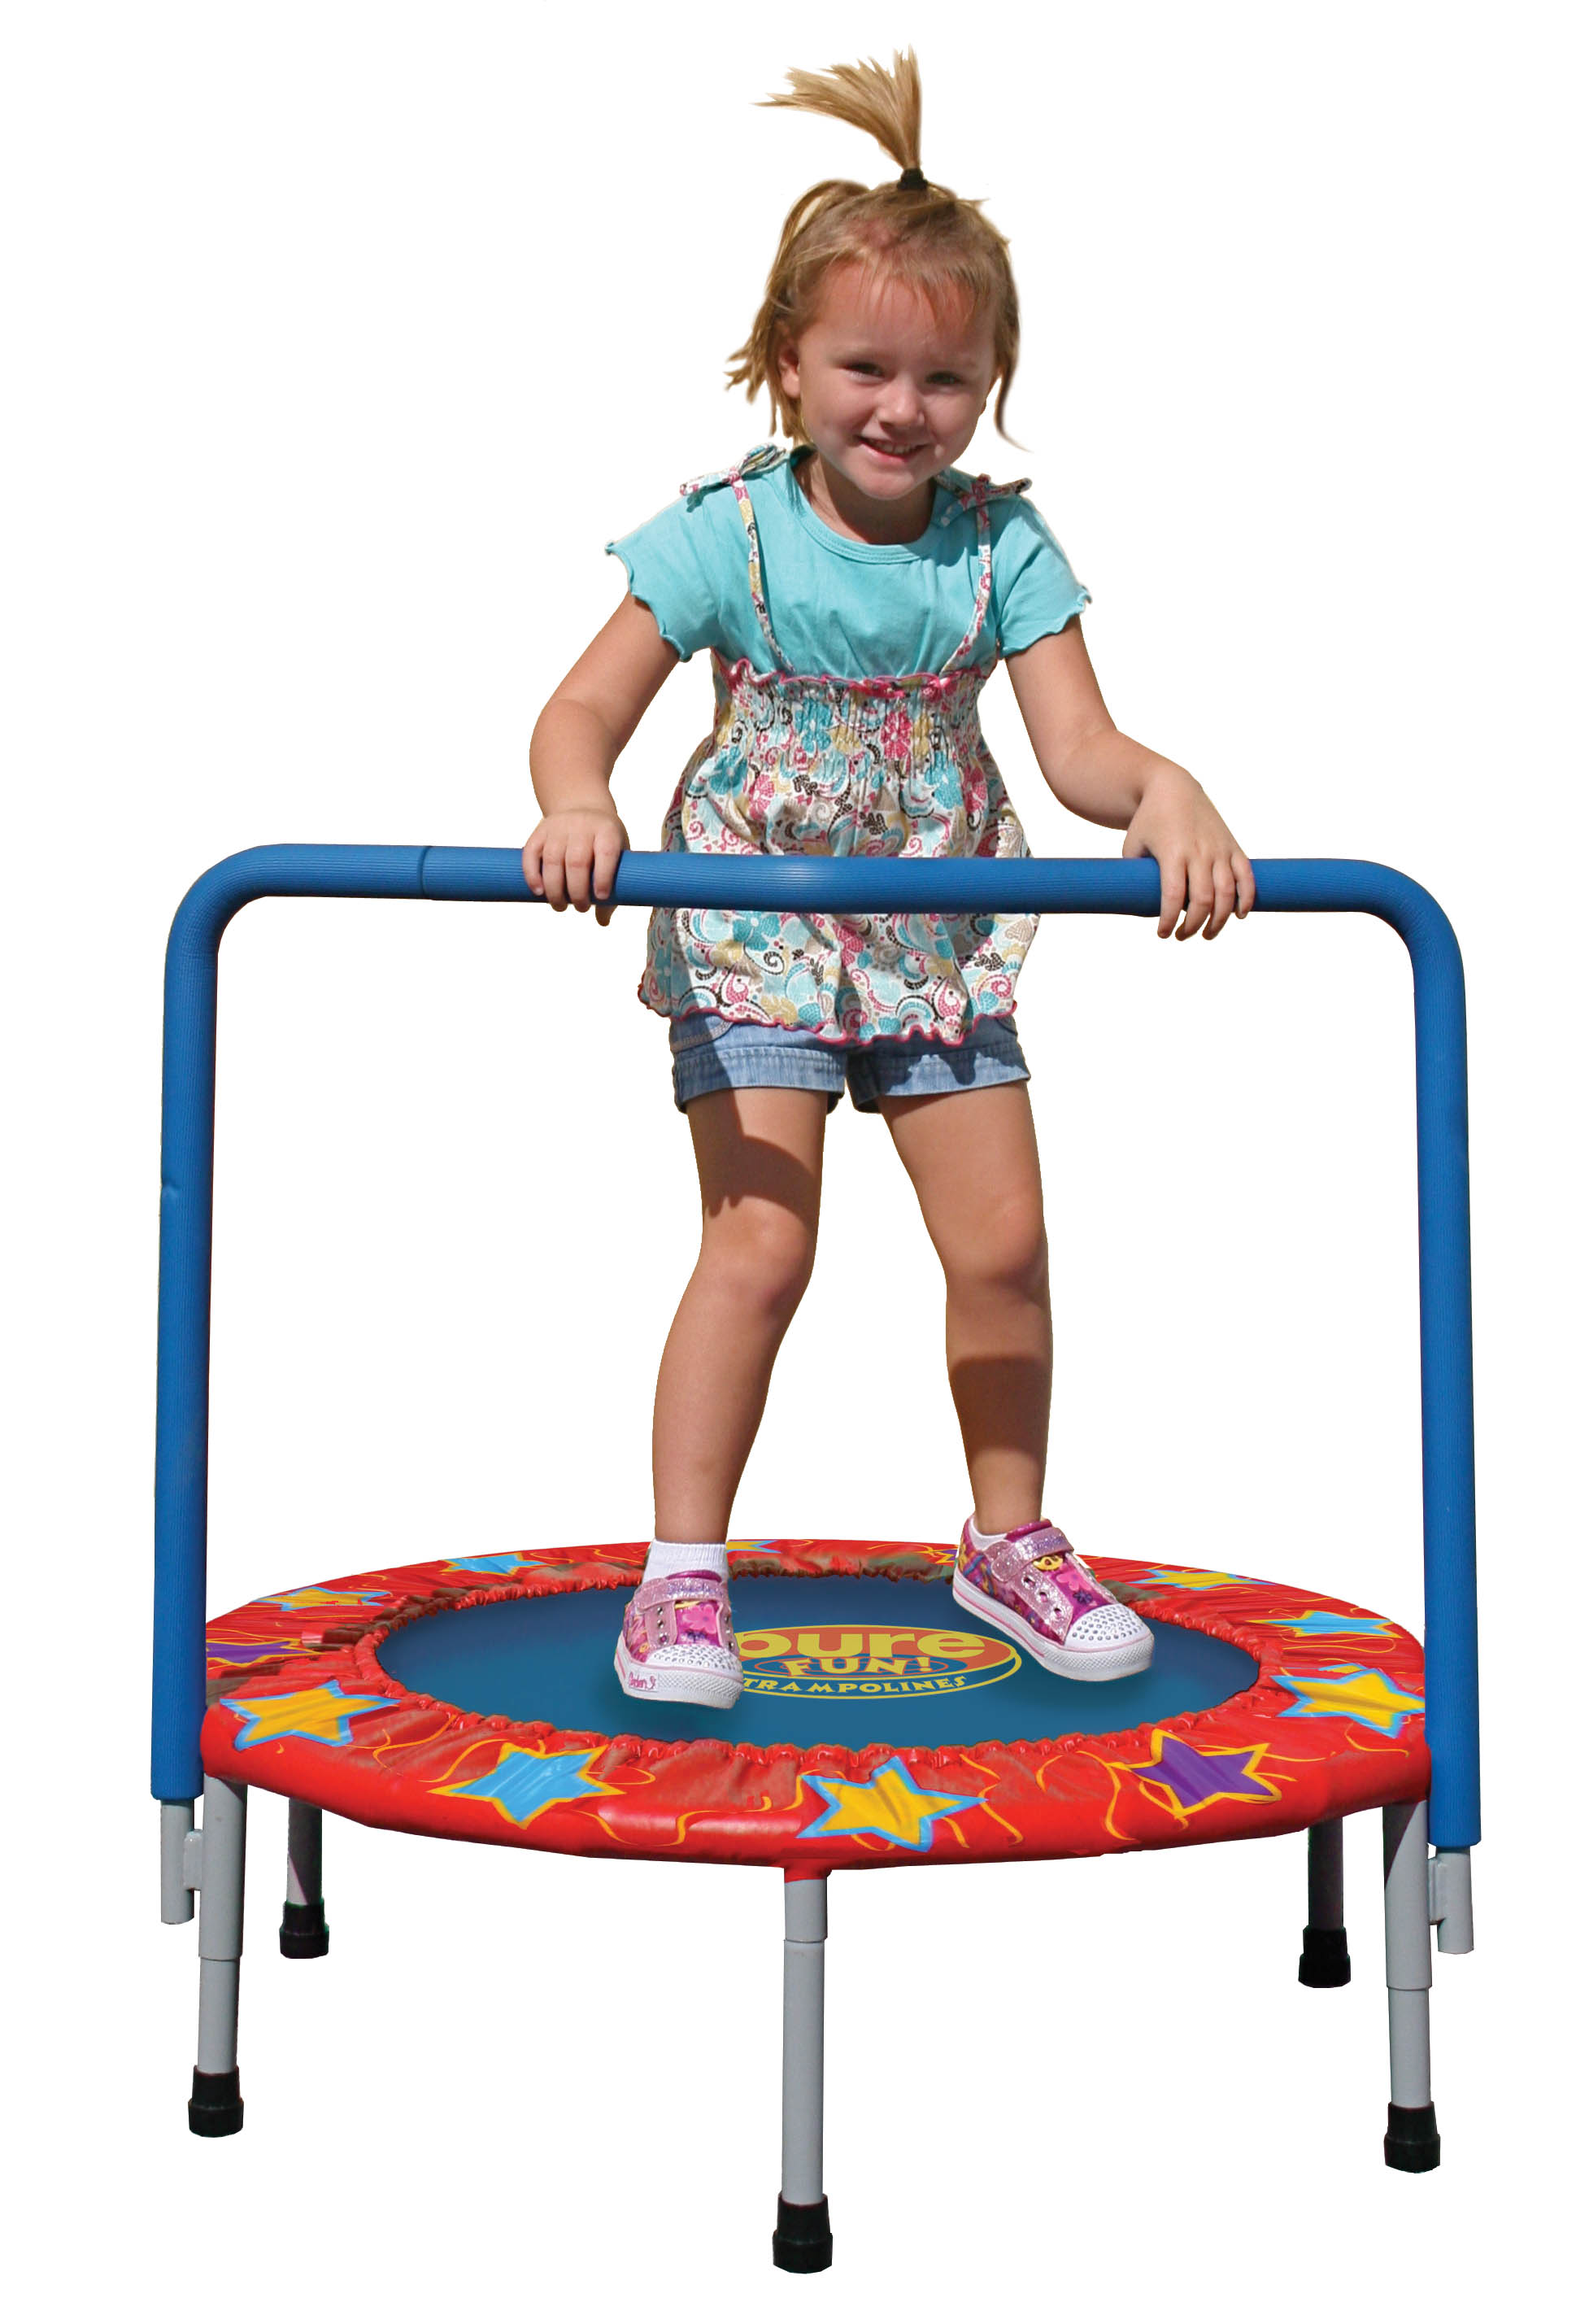 Pure Fun Kids 36 inch Mini Trampoline Mini Trampoline 0 0 Pure Fun Kids 36 inch Mini Trampoline